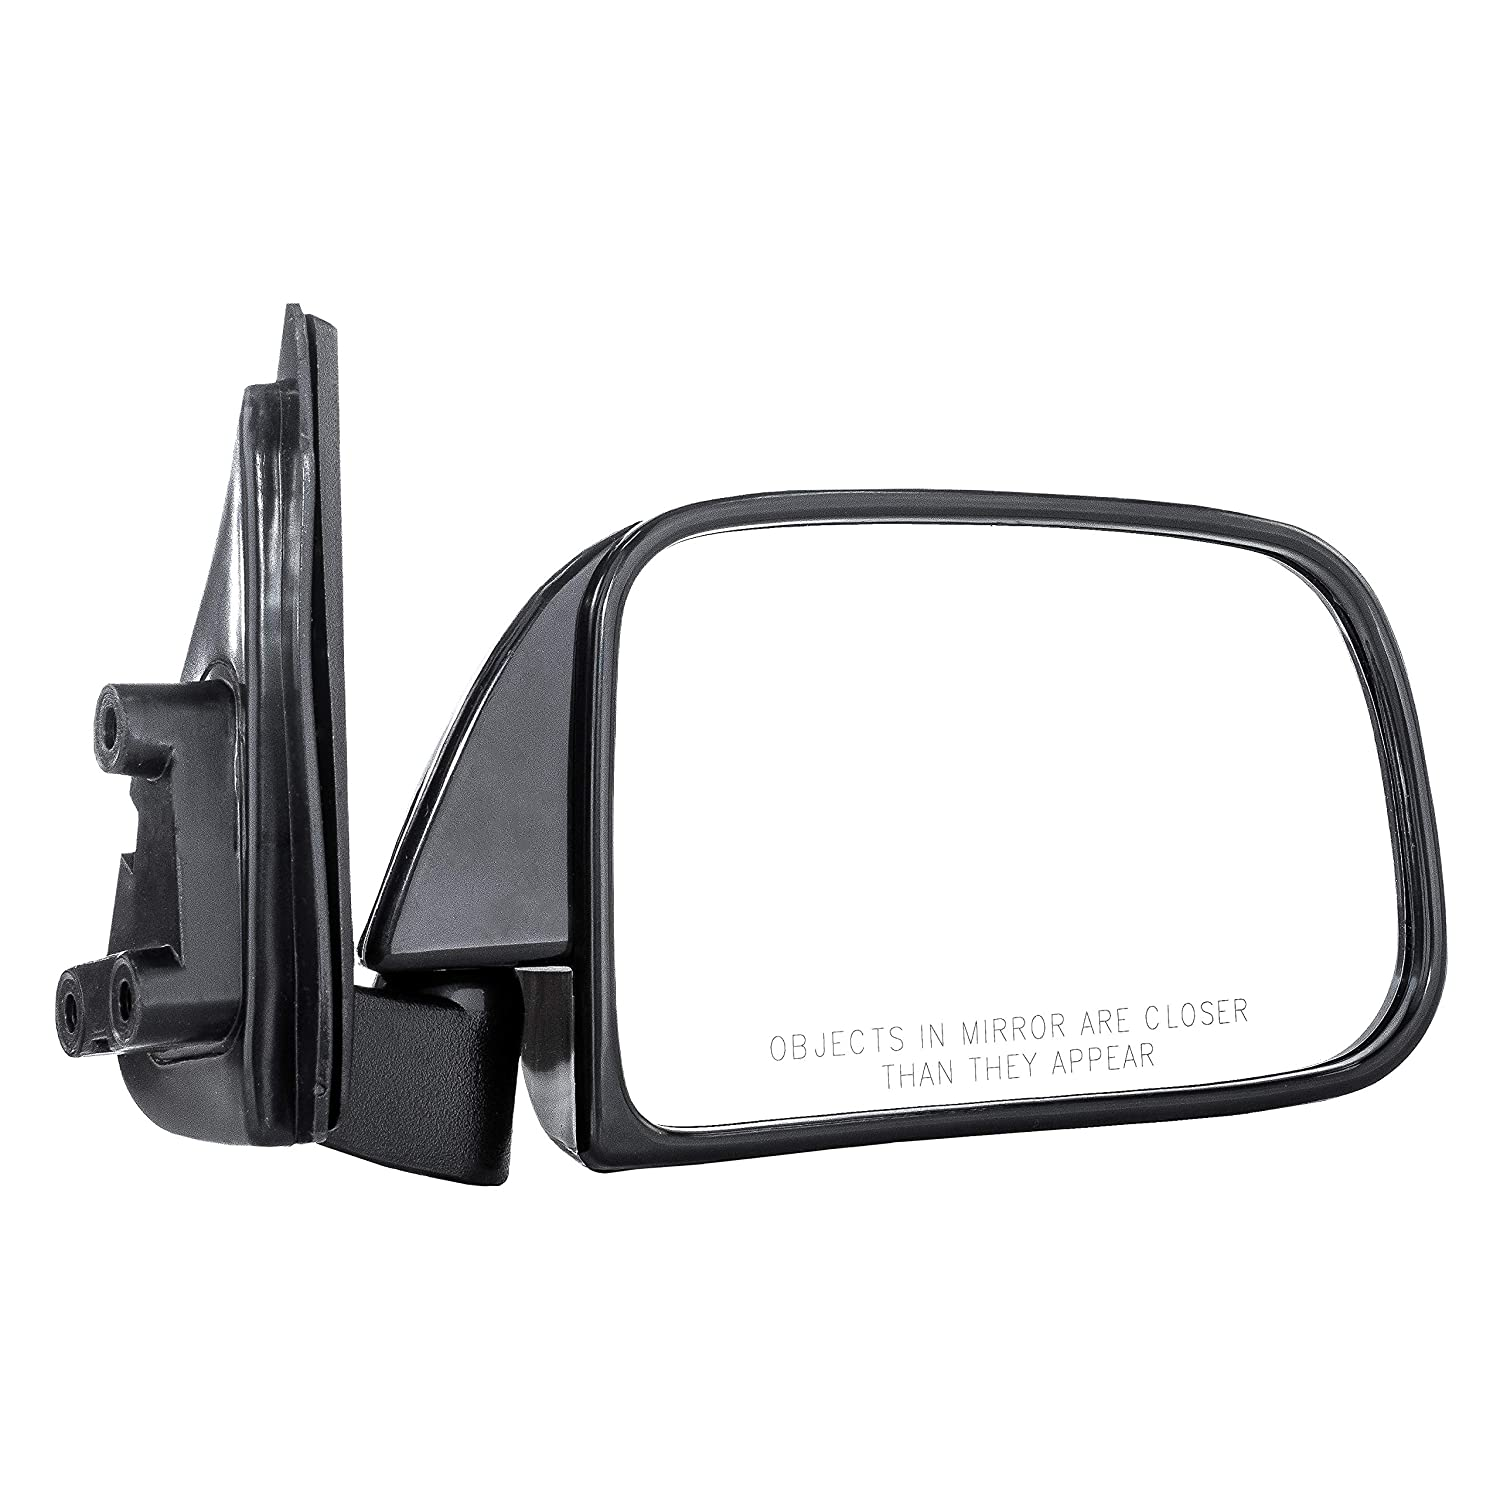 Dependable Direct Right Passenger Side Manually Operated 1989 1990 1991 1992 1993 1994 1995 TO1321112 Single Glass Paint to Match Mirror for Toyota Pickup